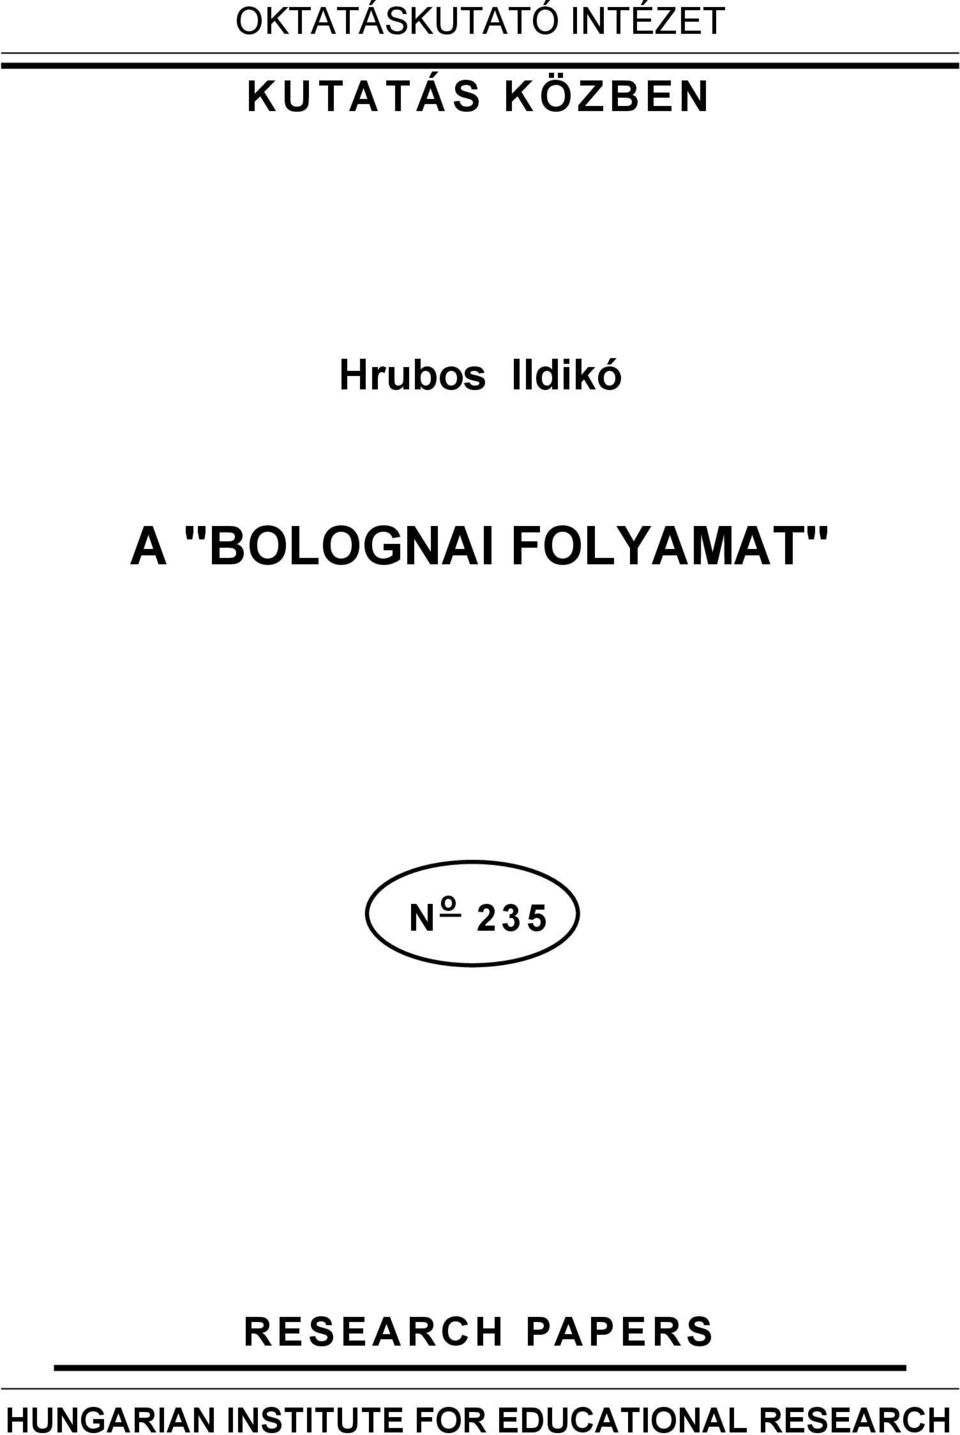 "FOLYAMAT"" N o 235 RESEARCH PAPERS"